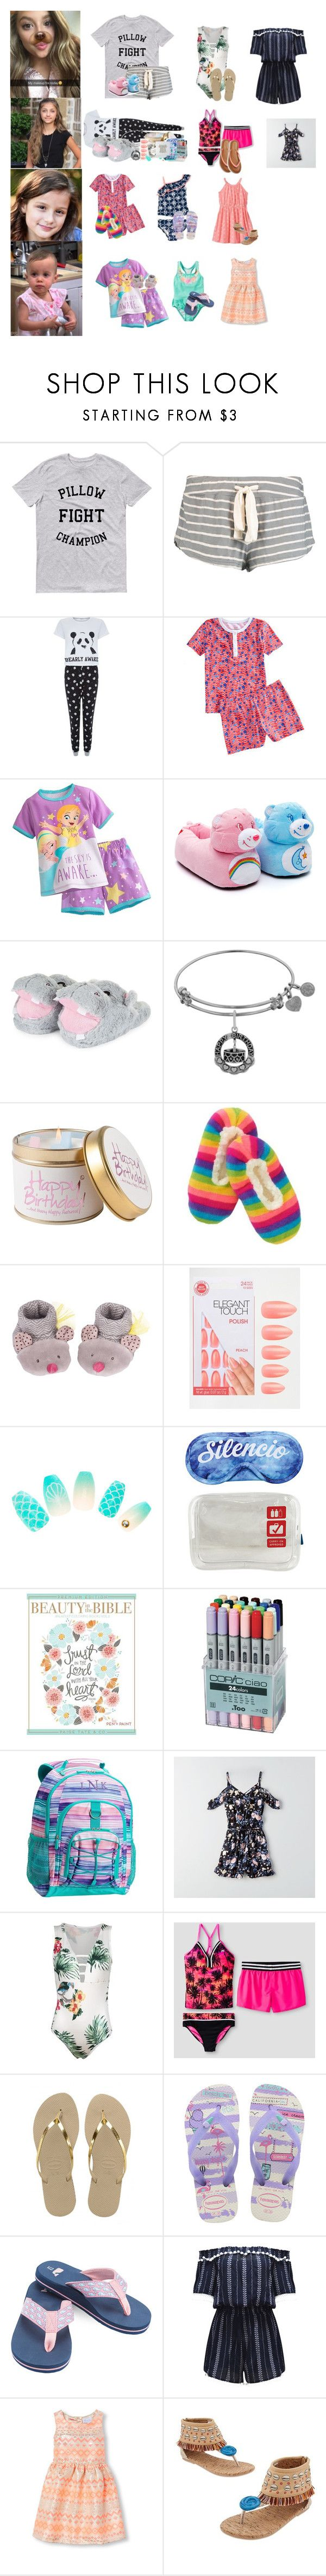 """""""Reese's 10th bday celebration! RTD"""" by laurenatria11 ❤ liked on Polyvore featuring Eberjey, Disney, Lily-Flame, Moulin Roty, Elegant Touch, Flight 001, PBteen, American Eagle Outfitters, Carter's and ZeroXposur"""